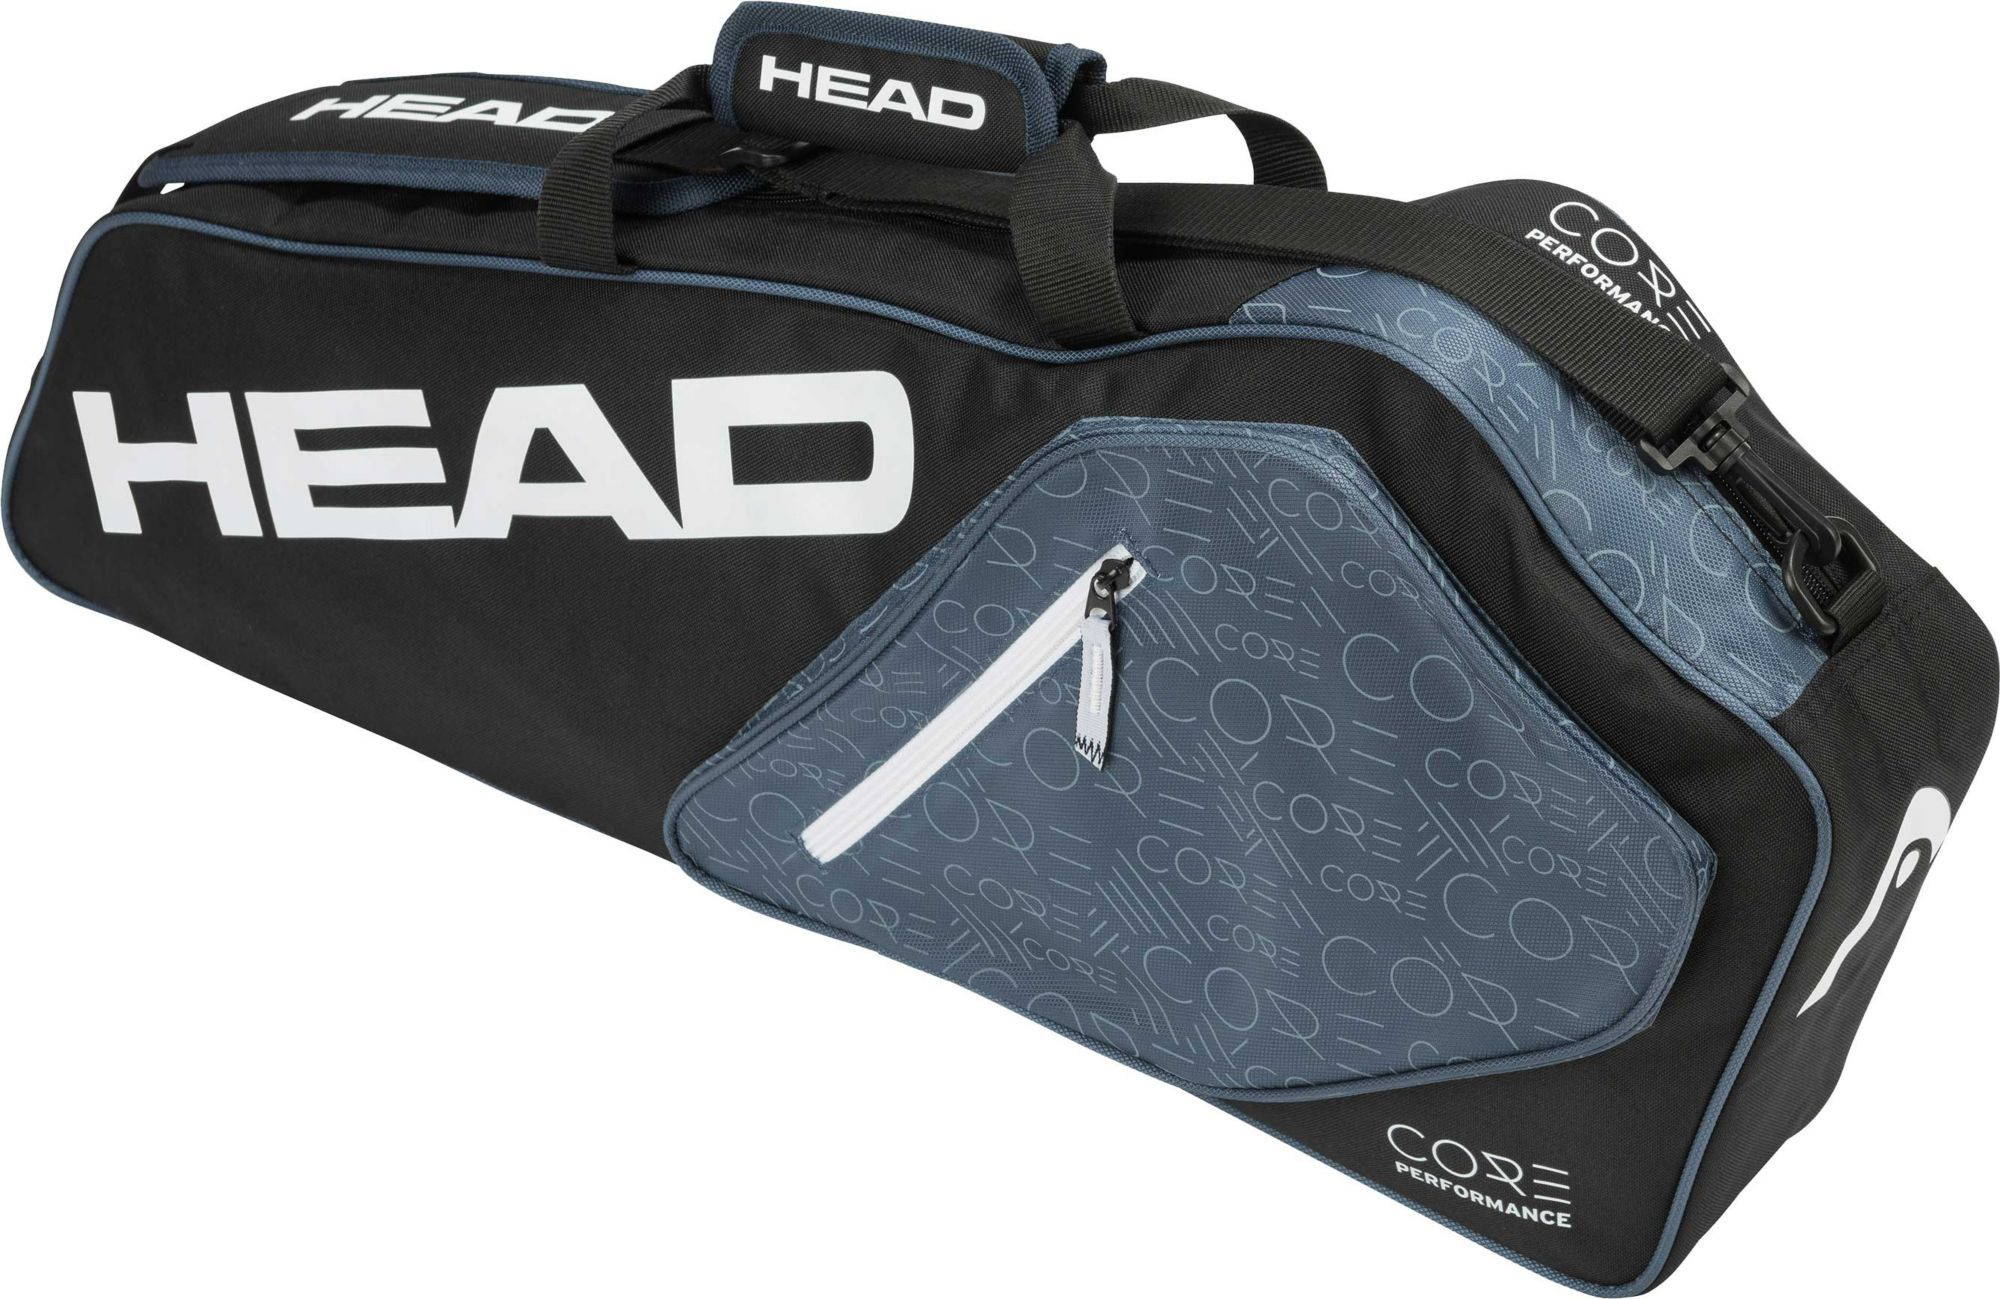 Head Core Pro 3 Pack Tennis Bag With Images Tennis Bags Tennis Bag Pro Tennis